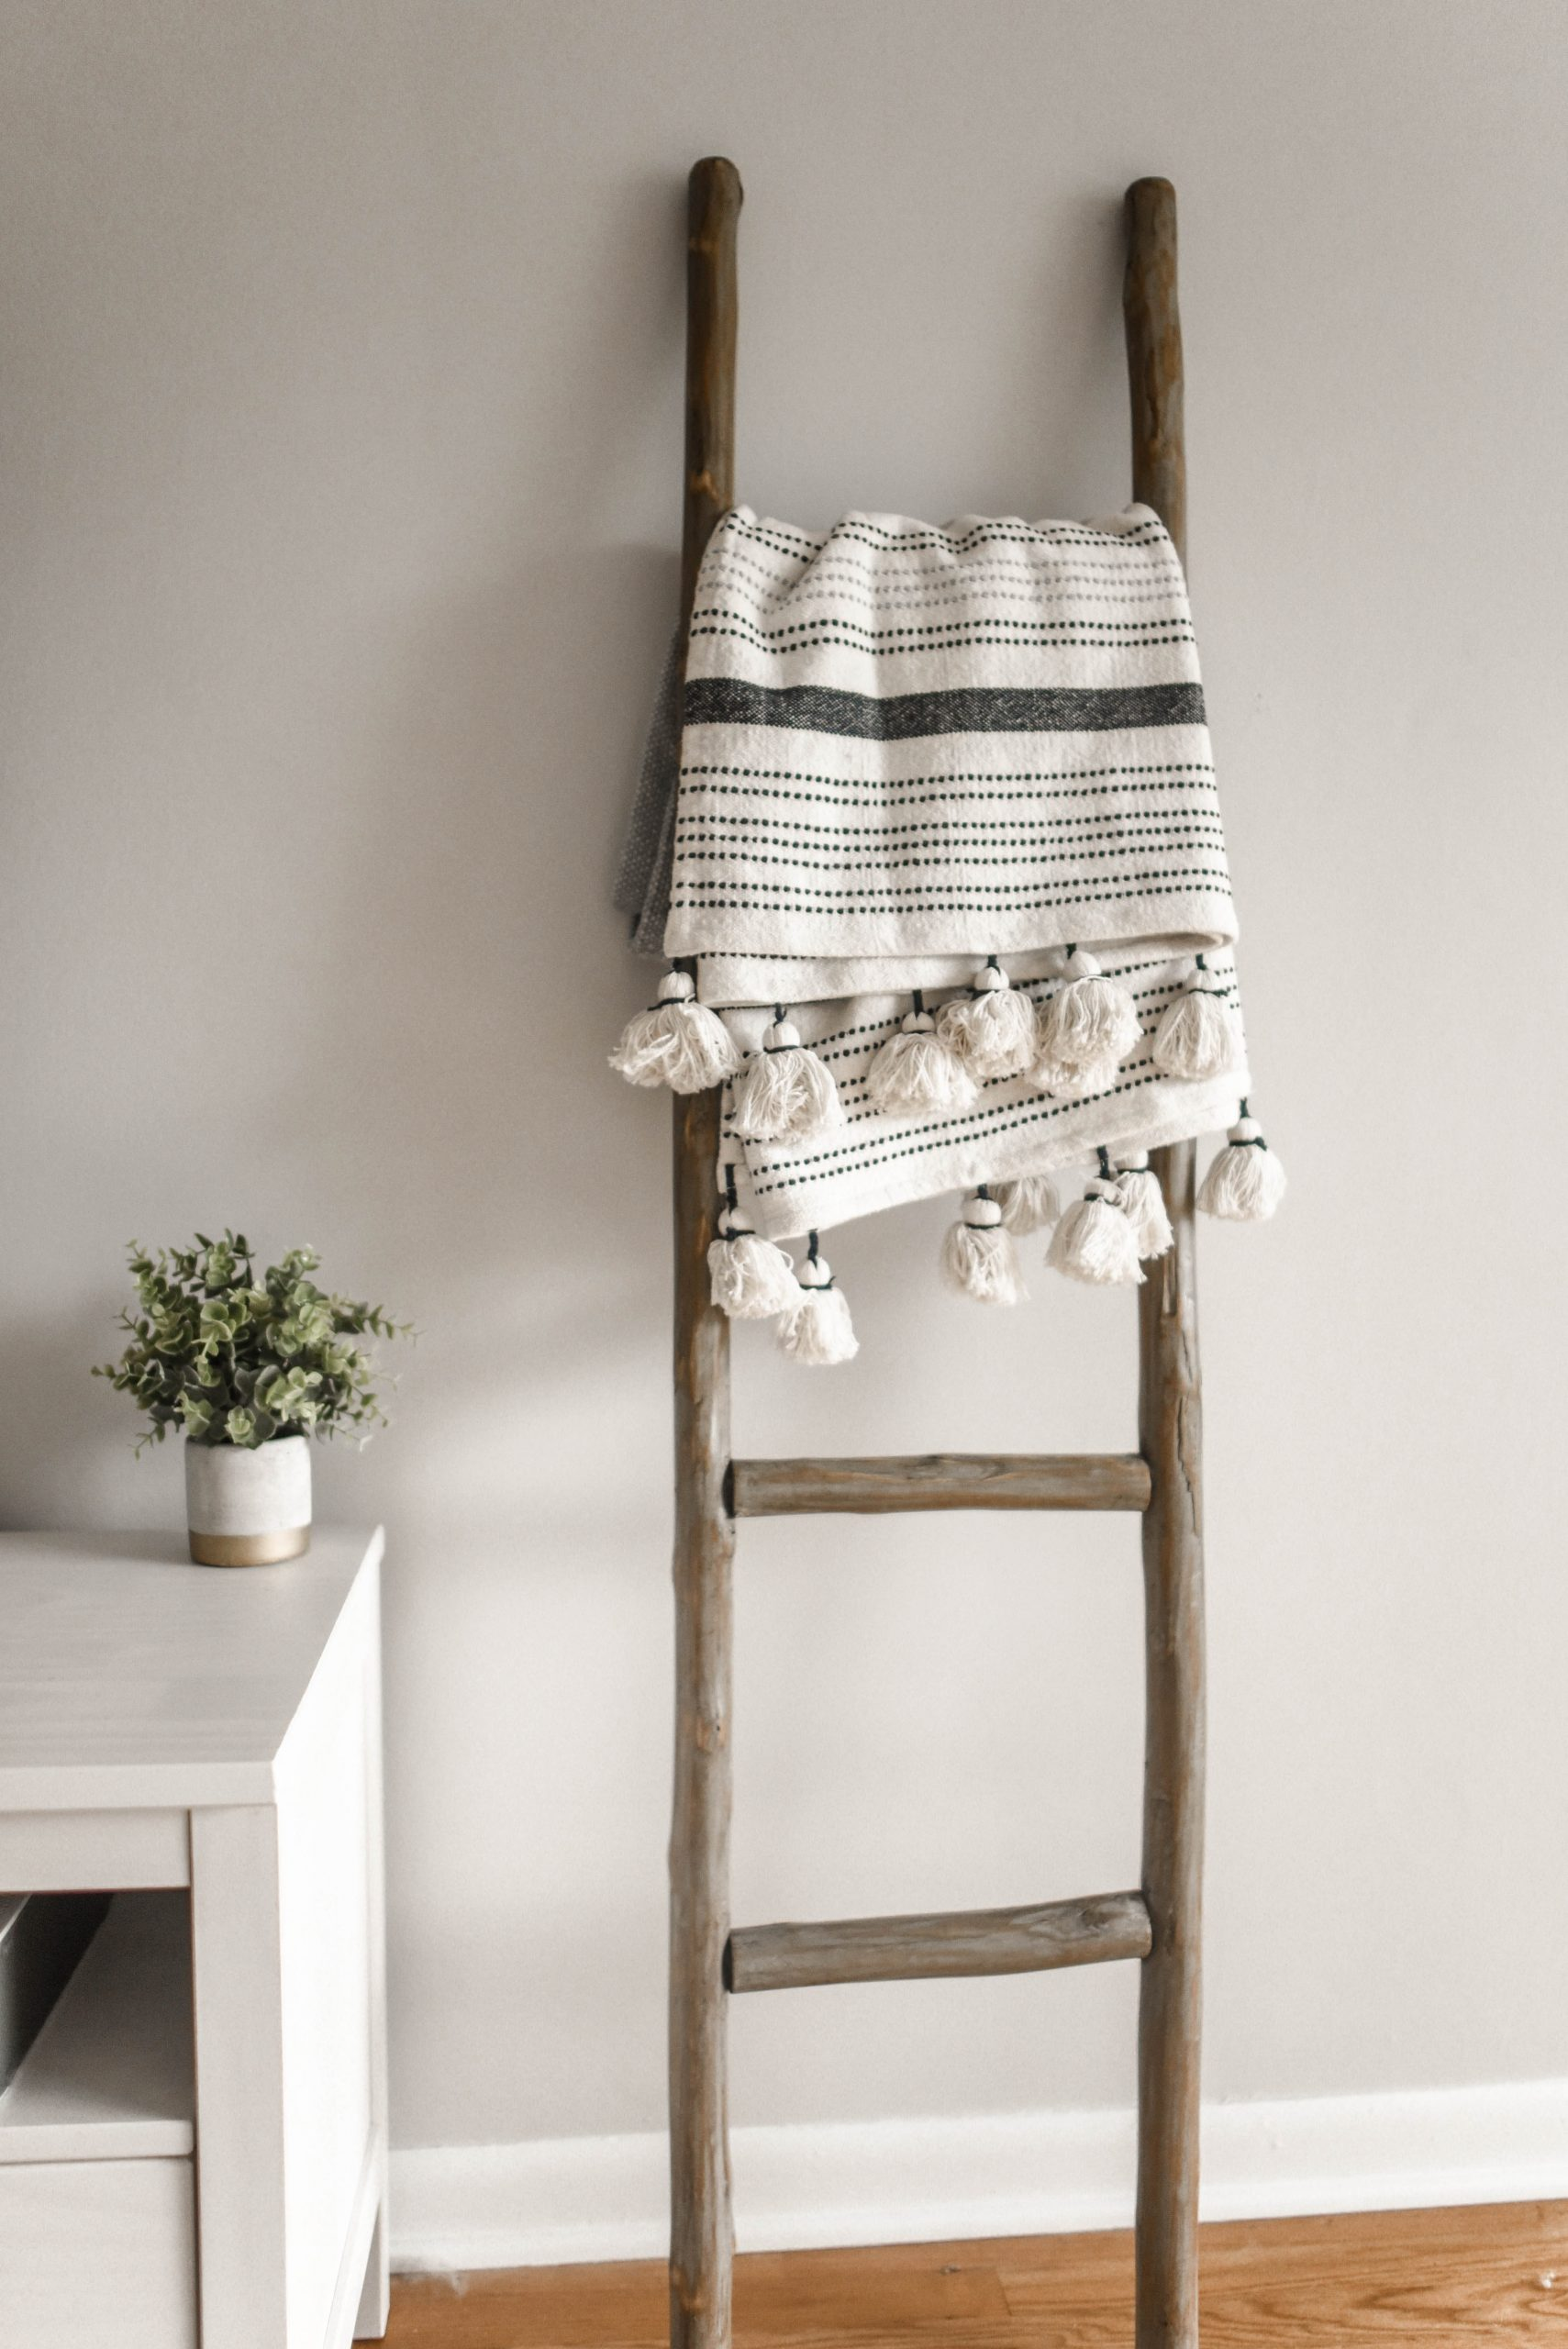 Rustic Wood Bathroom Towel Ladder